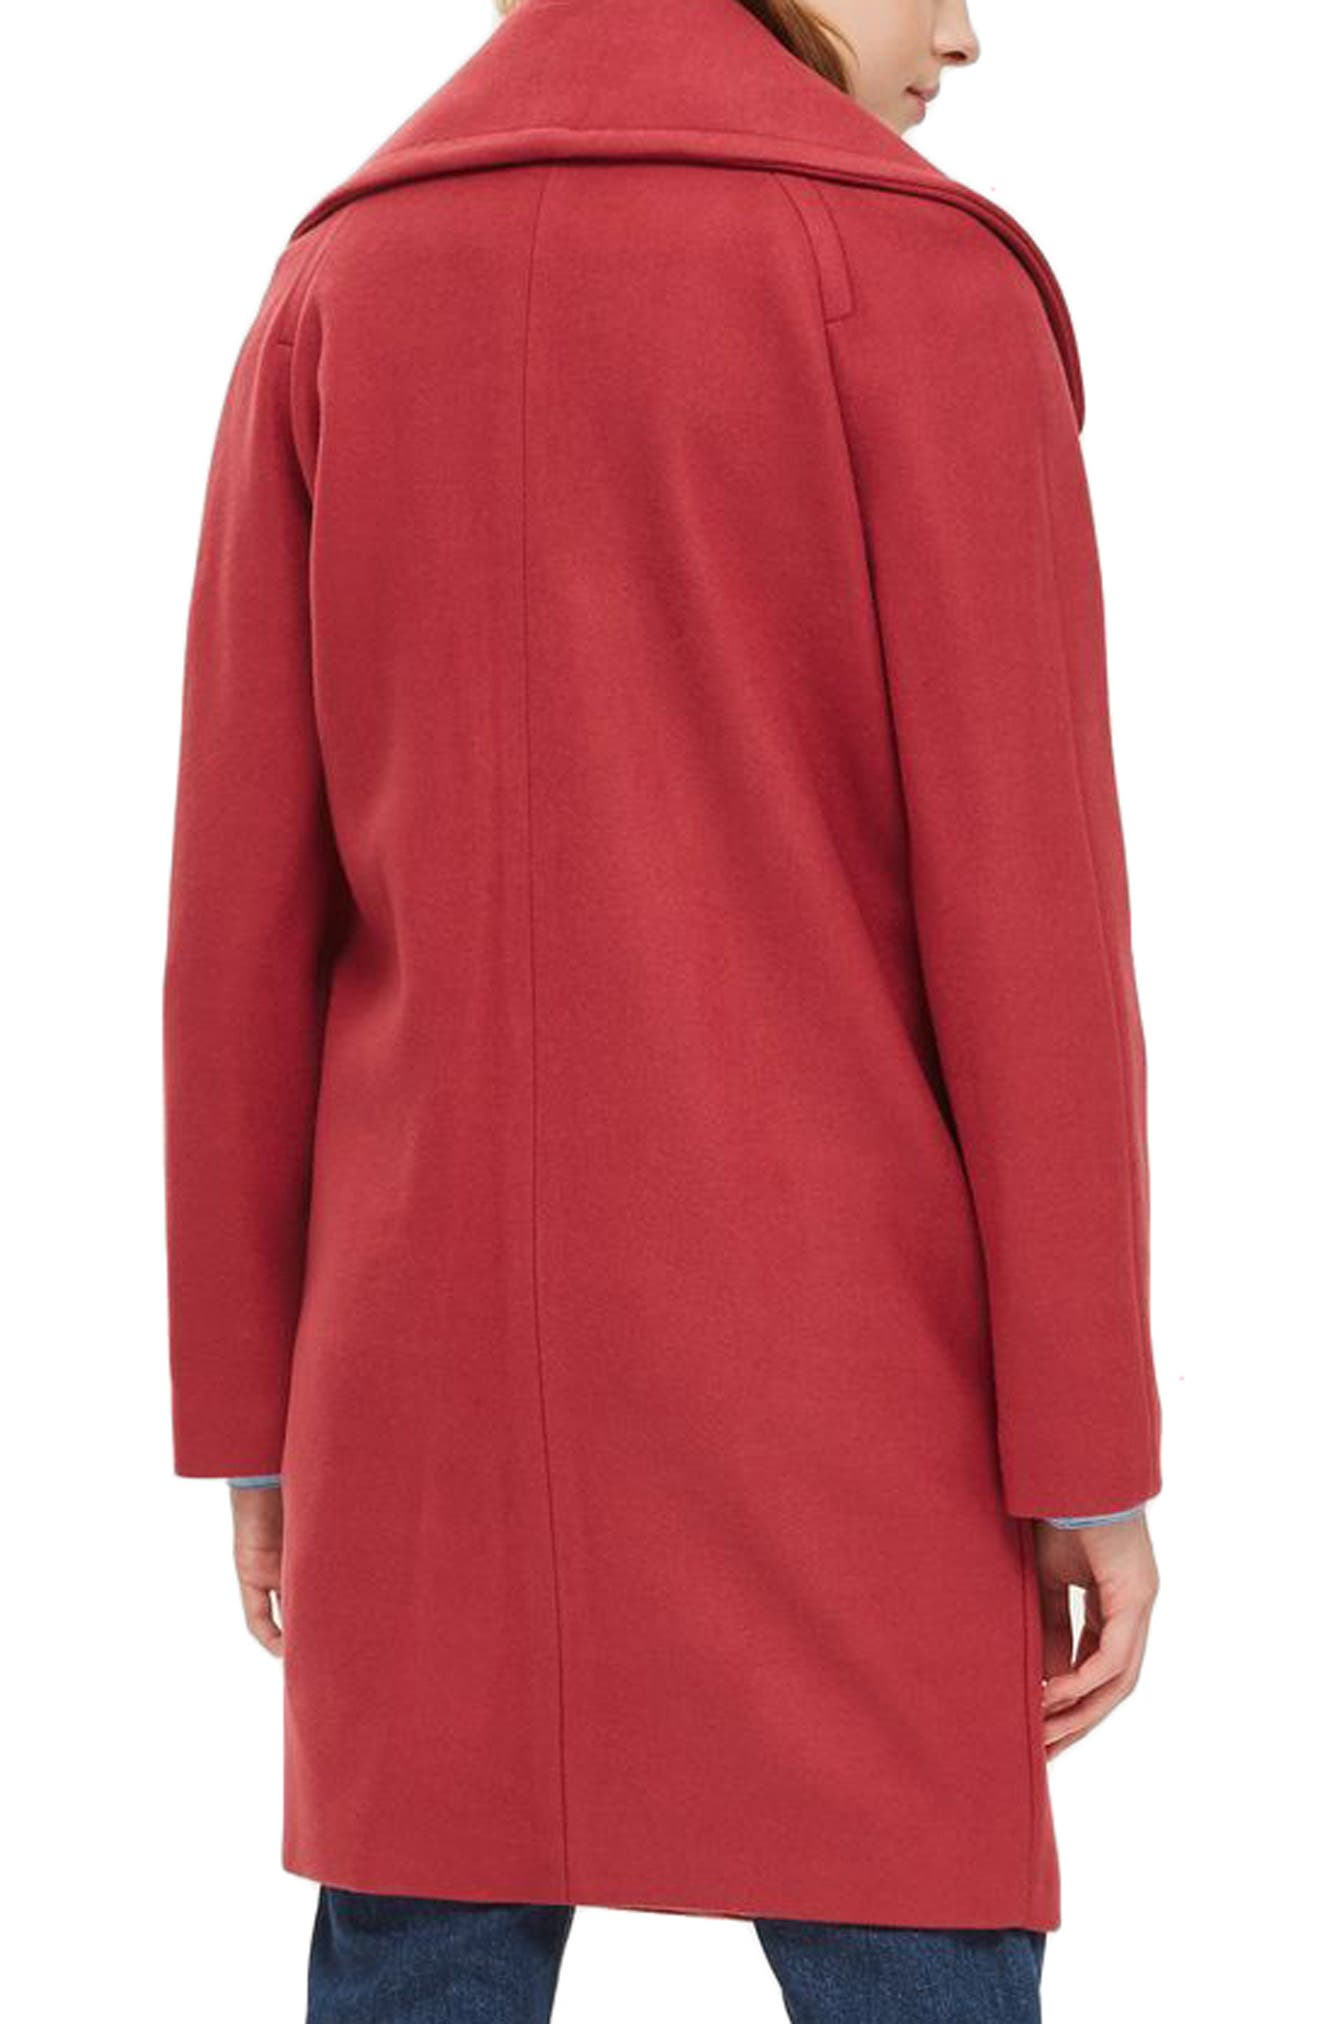 Ring Popper Cocoon Coat,                             Alternate thumbnail 2, color,                             Light Red